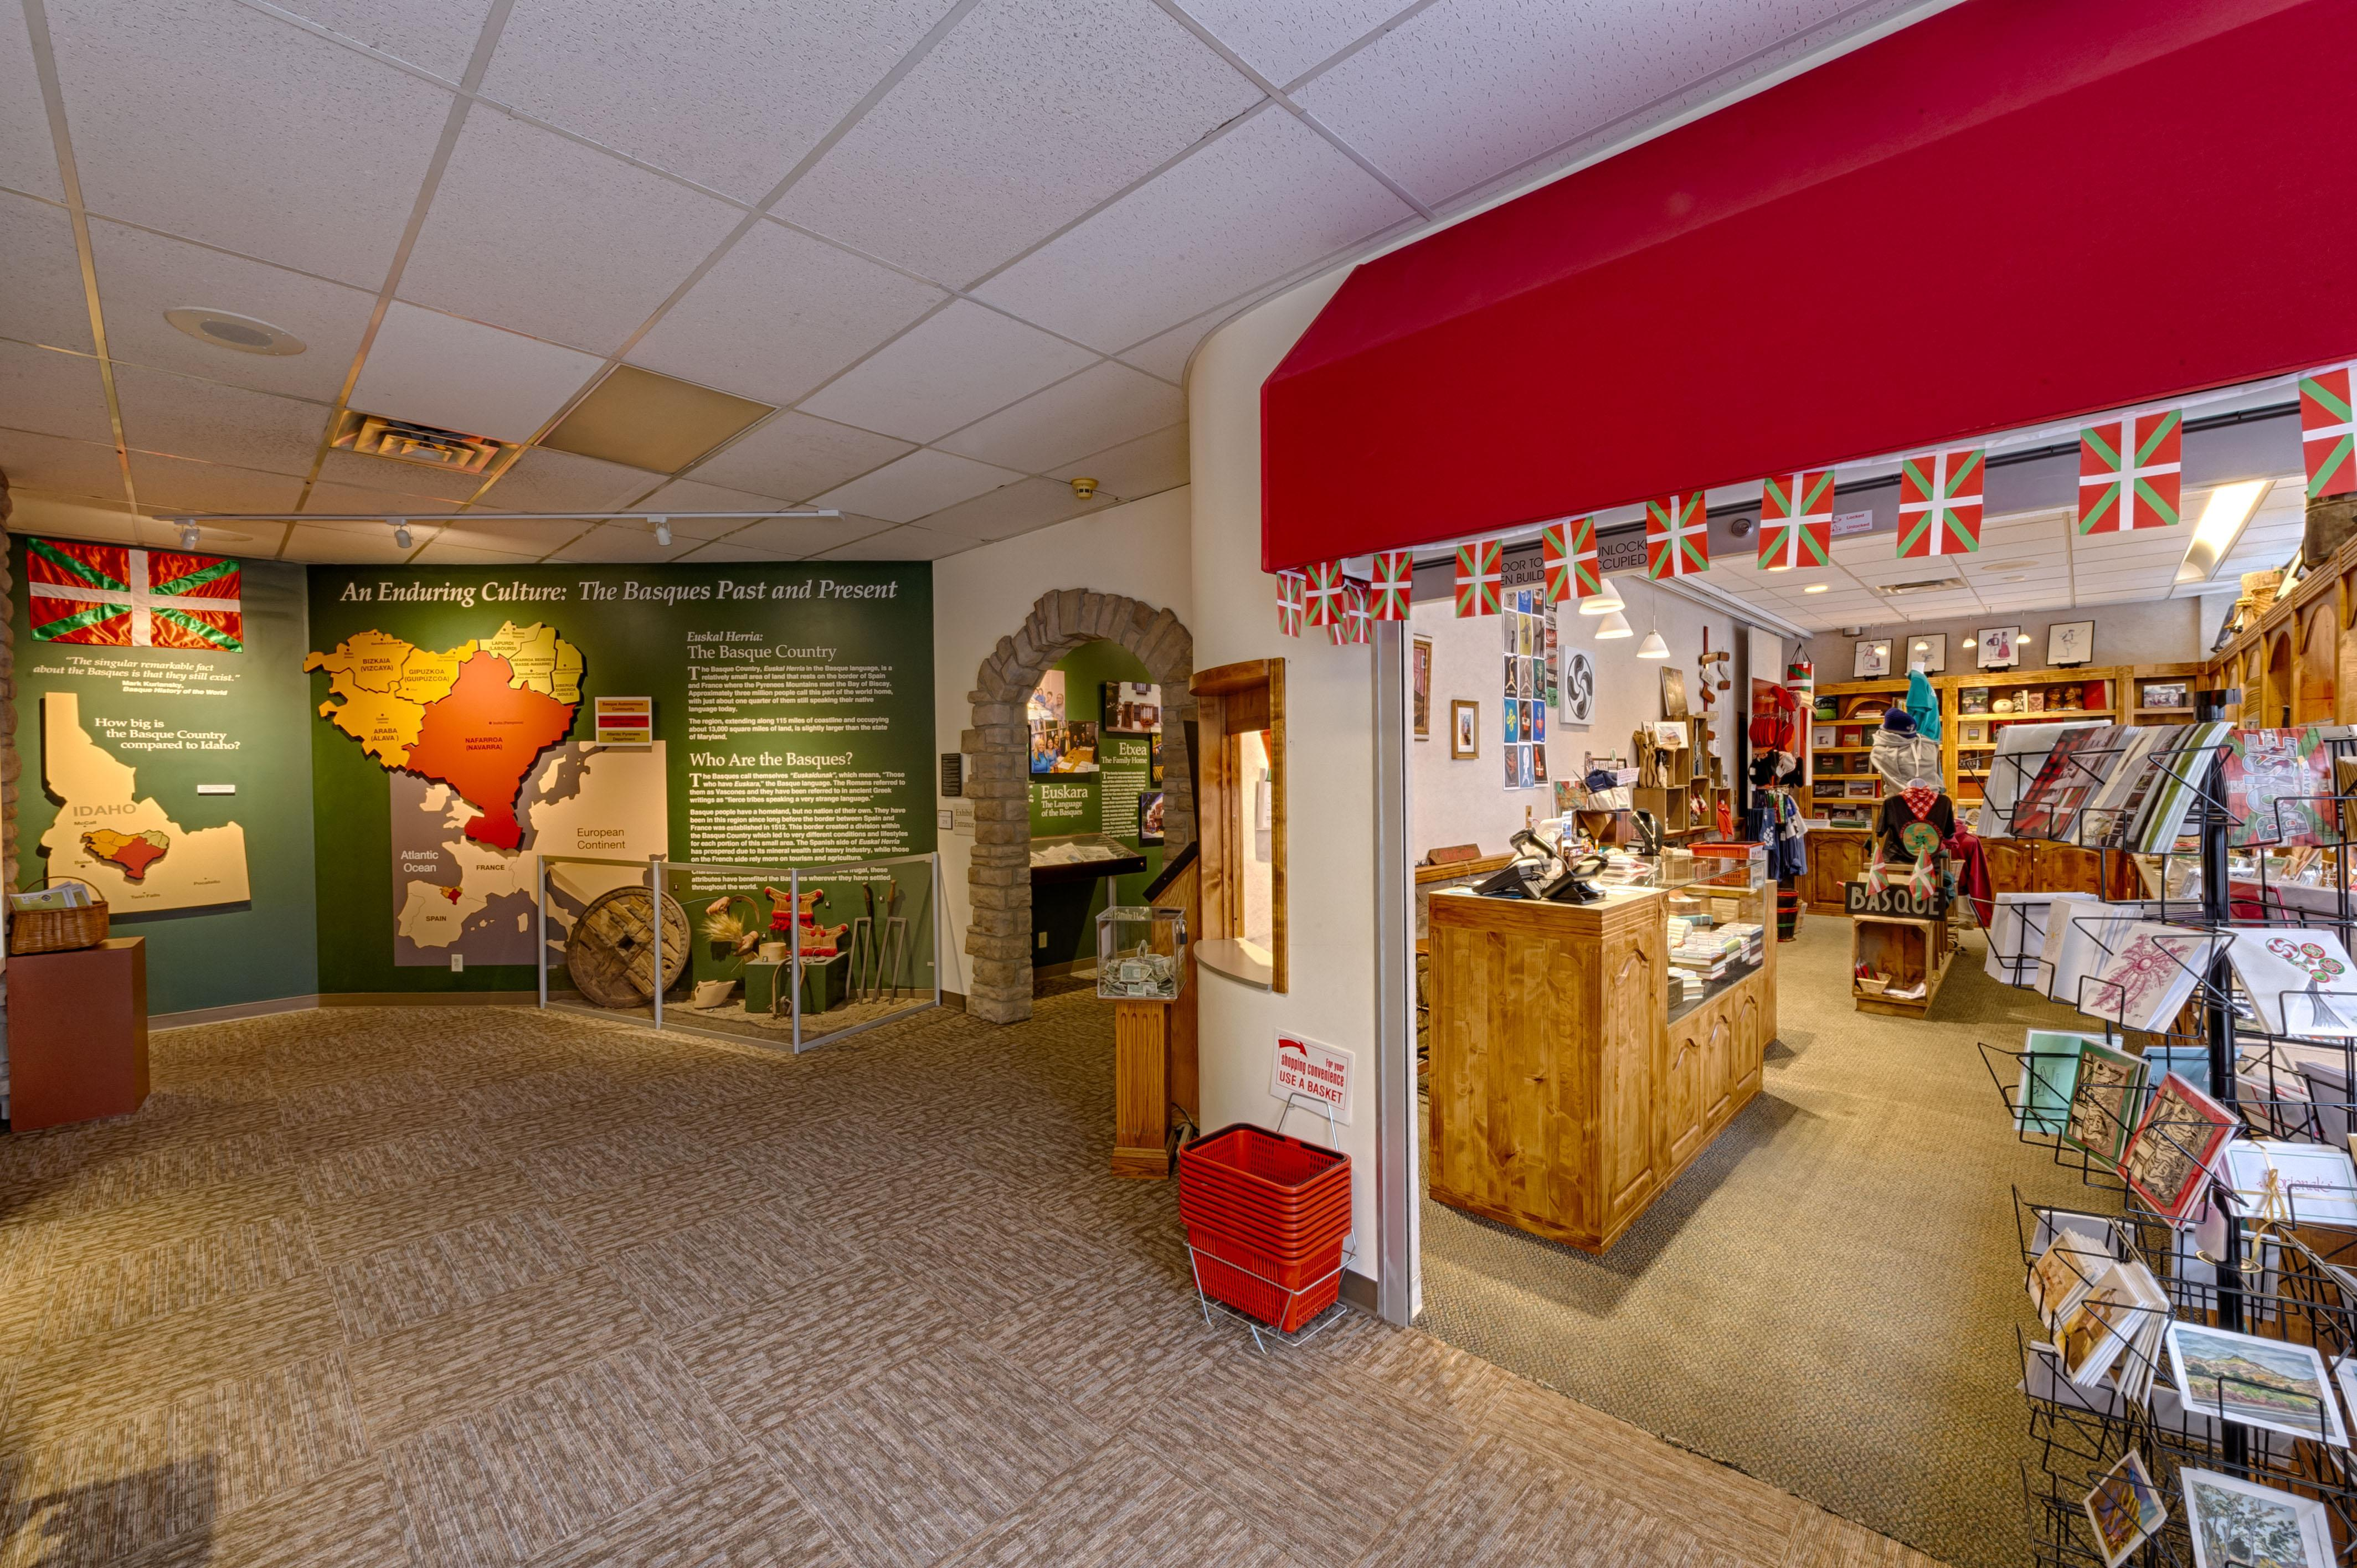 Inside of the Boise Basque Museum and Cultural Center. Pictured are an exhibit about Basque history and culture and a gift shop.